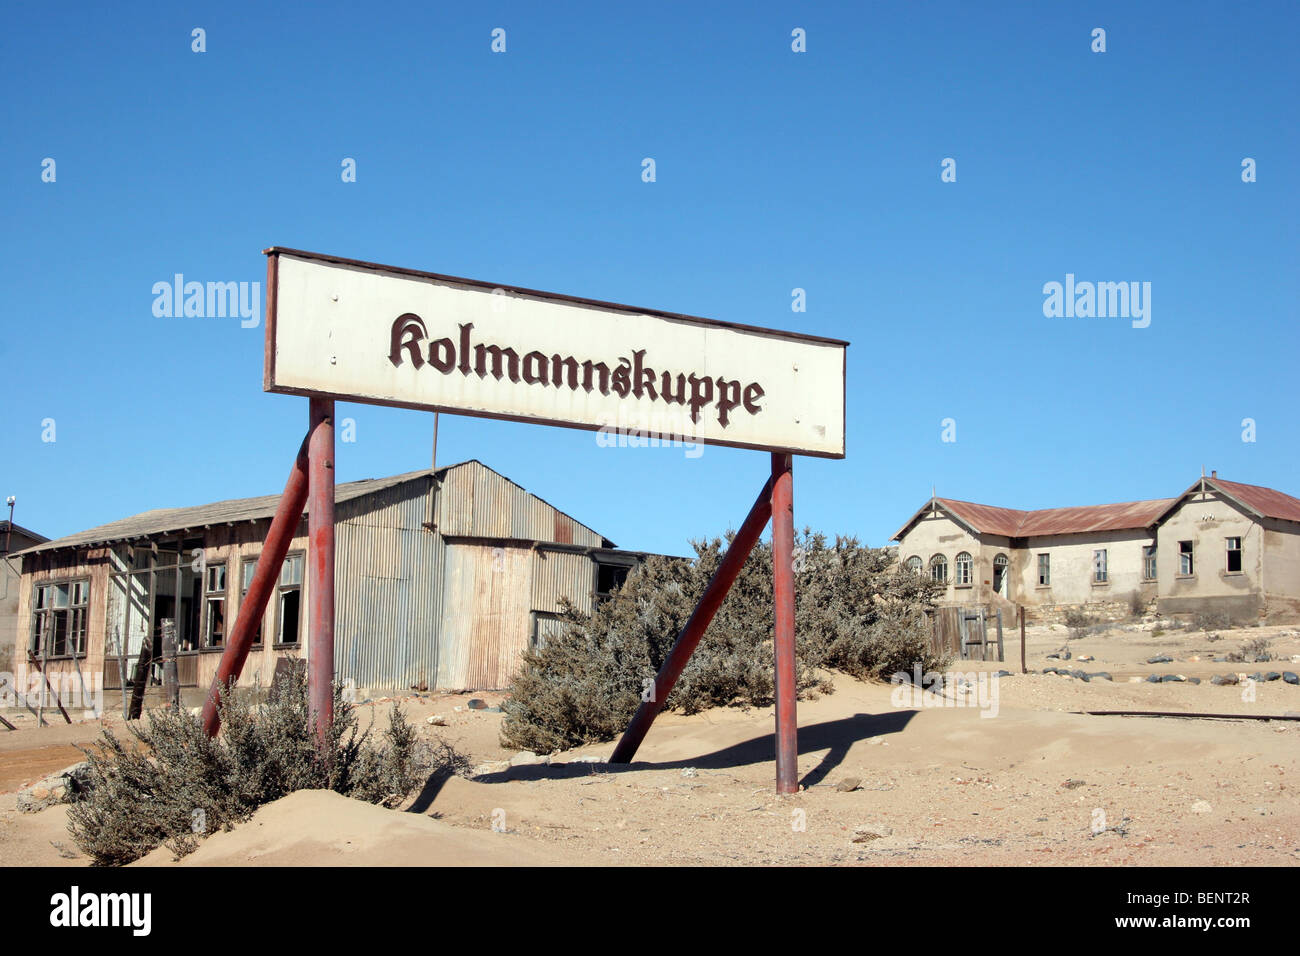 Sign of the ghost town Kolmanskop, an abandoned mining town in the desert, Luderitz, Namibia, South Africa - Stock Image